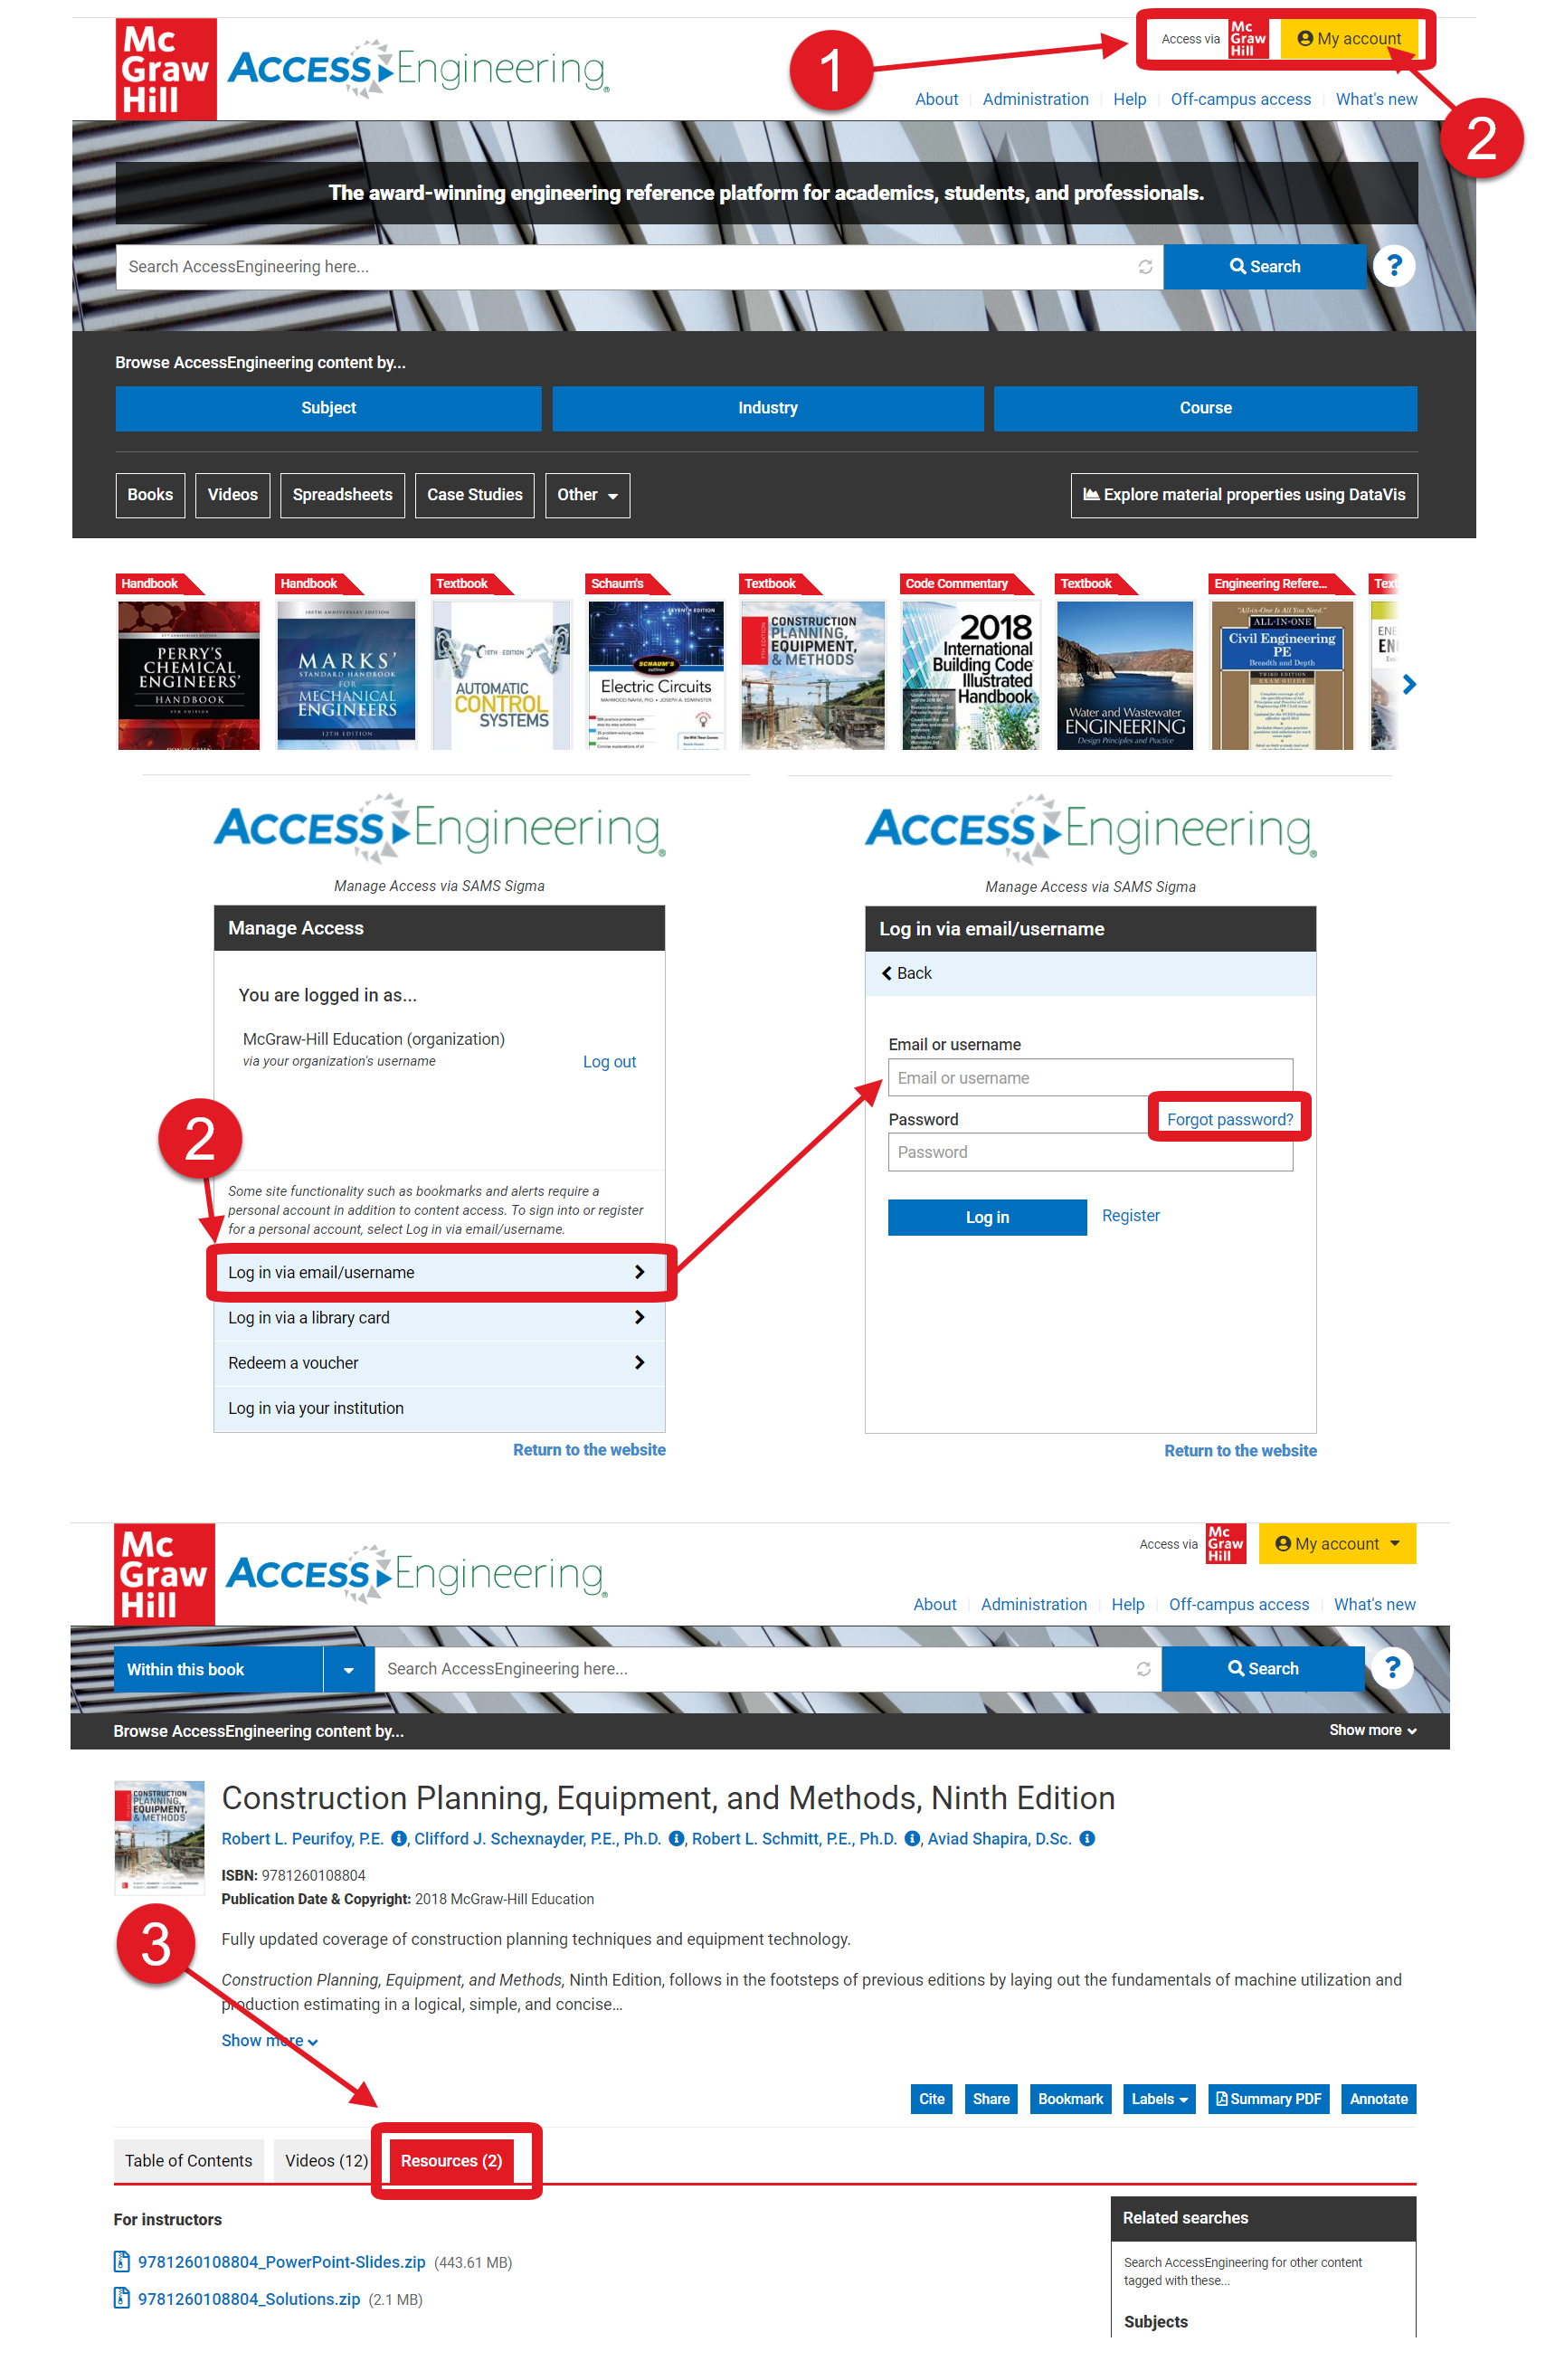 Shows steps to log in to personal account and access instructor resources